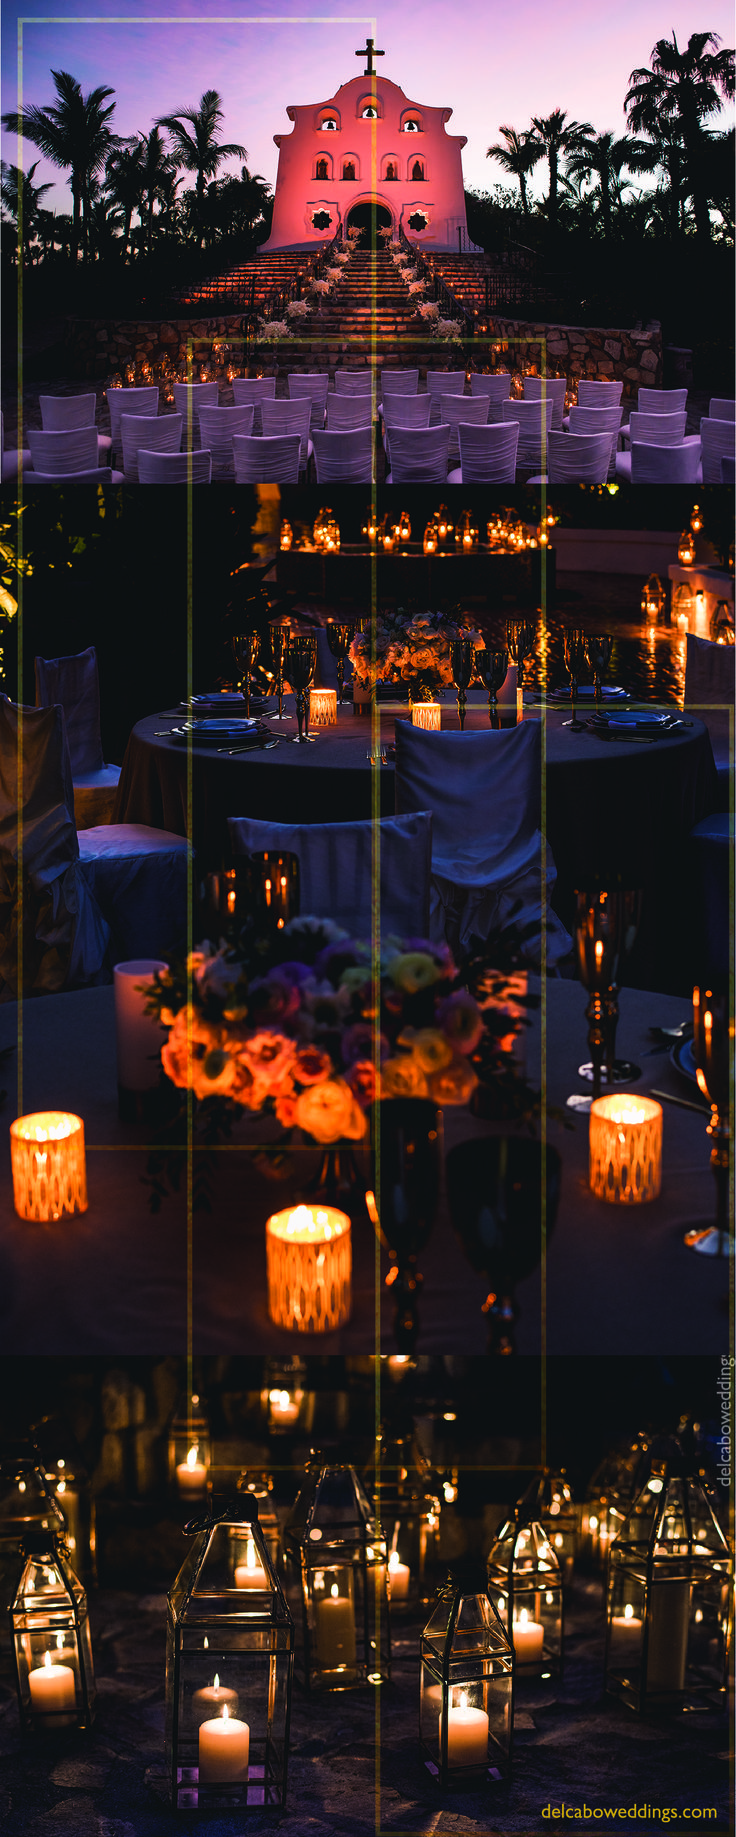 Metallic wedding ideas! Check out our board for amazing inspiration!